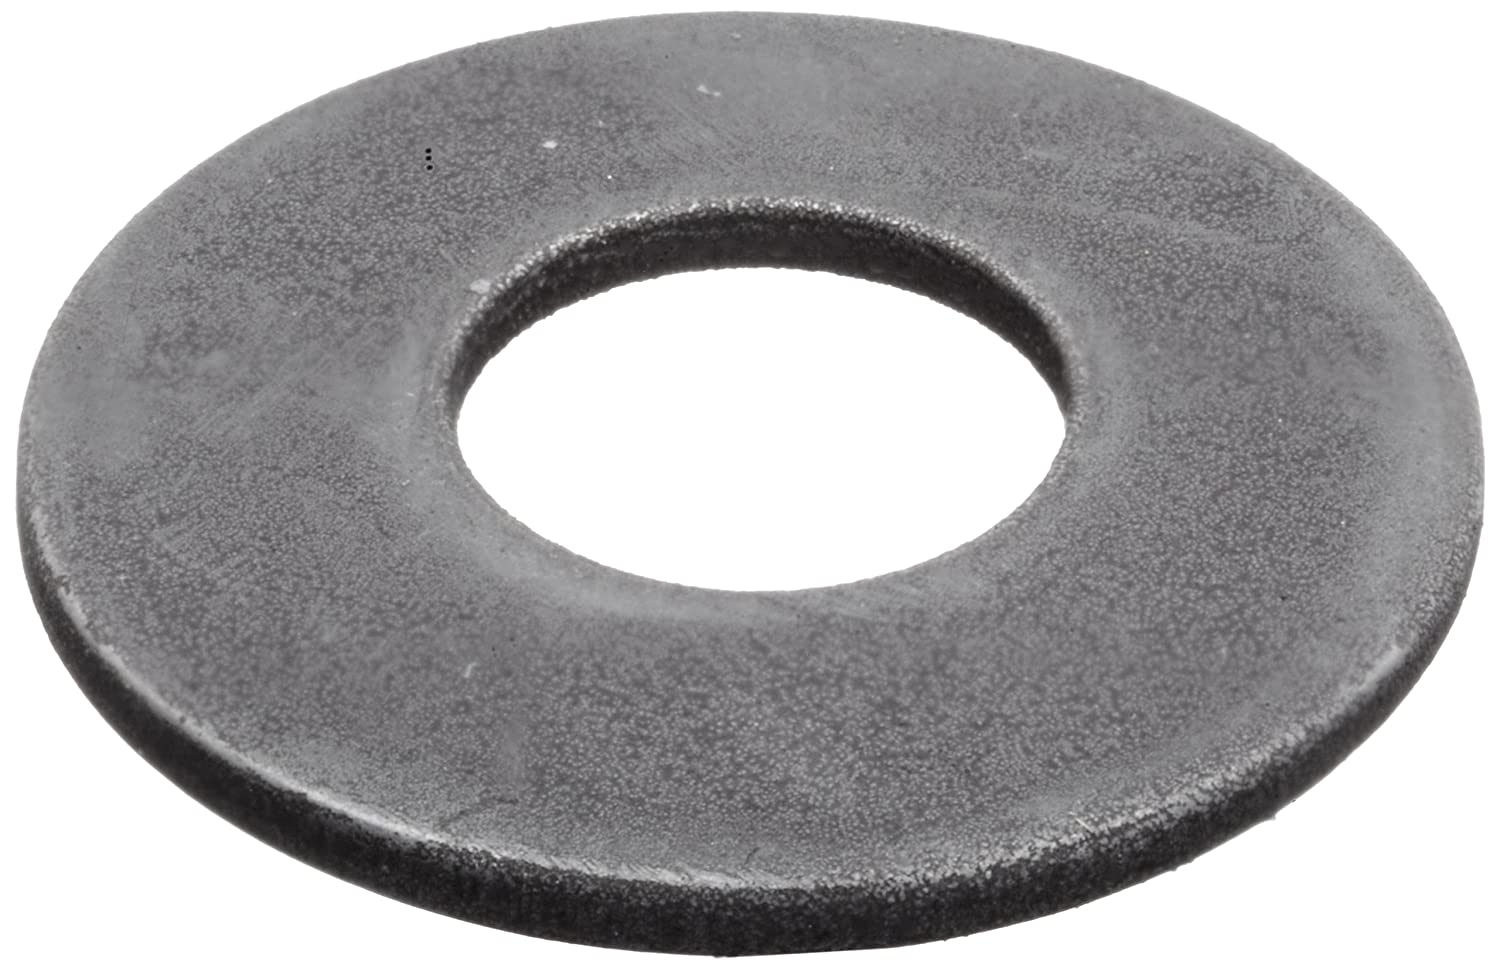 Metric Carbon Steel Belleville Spring Washers 4.2 millimeters Inner Diameter 12 millimeters Outside Diameter 0.8 millimeters Free Height 0.5 millimeters Compressed Height 178 newtons Max. Load Pack of 10